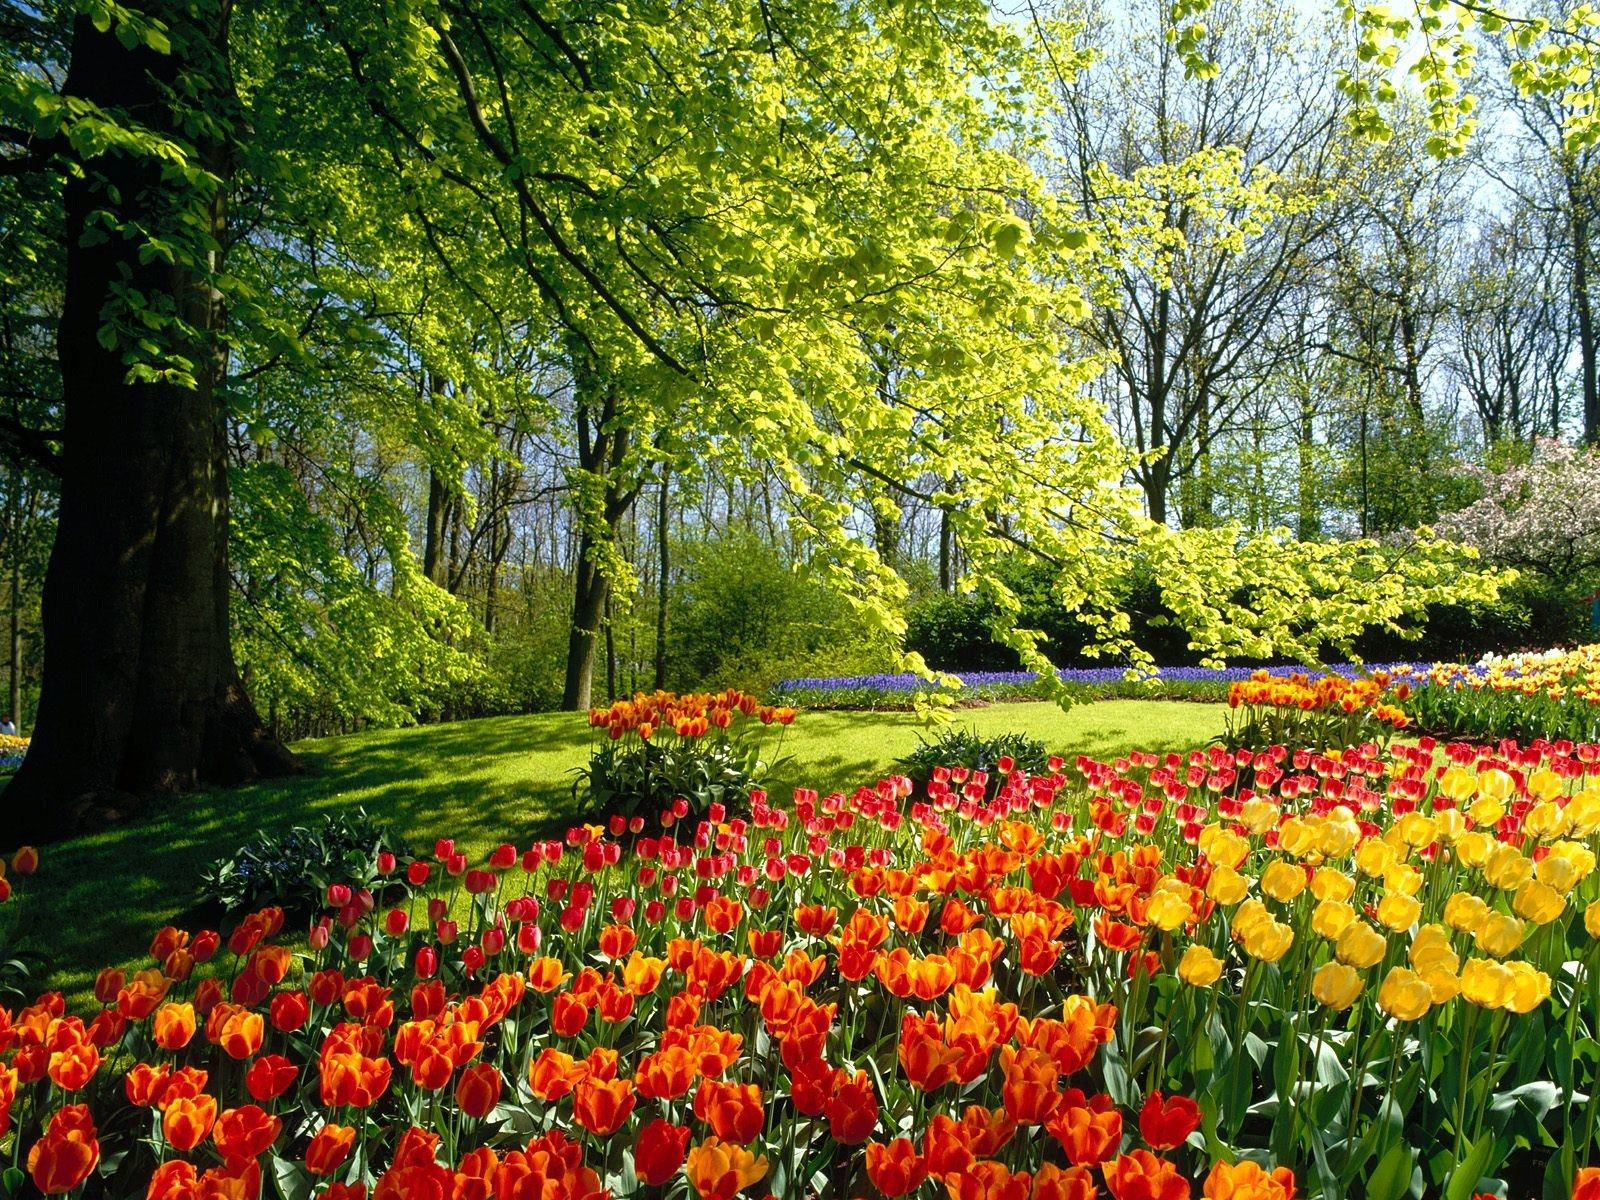 Related Wallpapers. Tulip Field ...